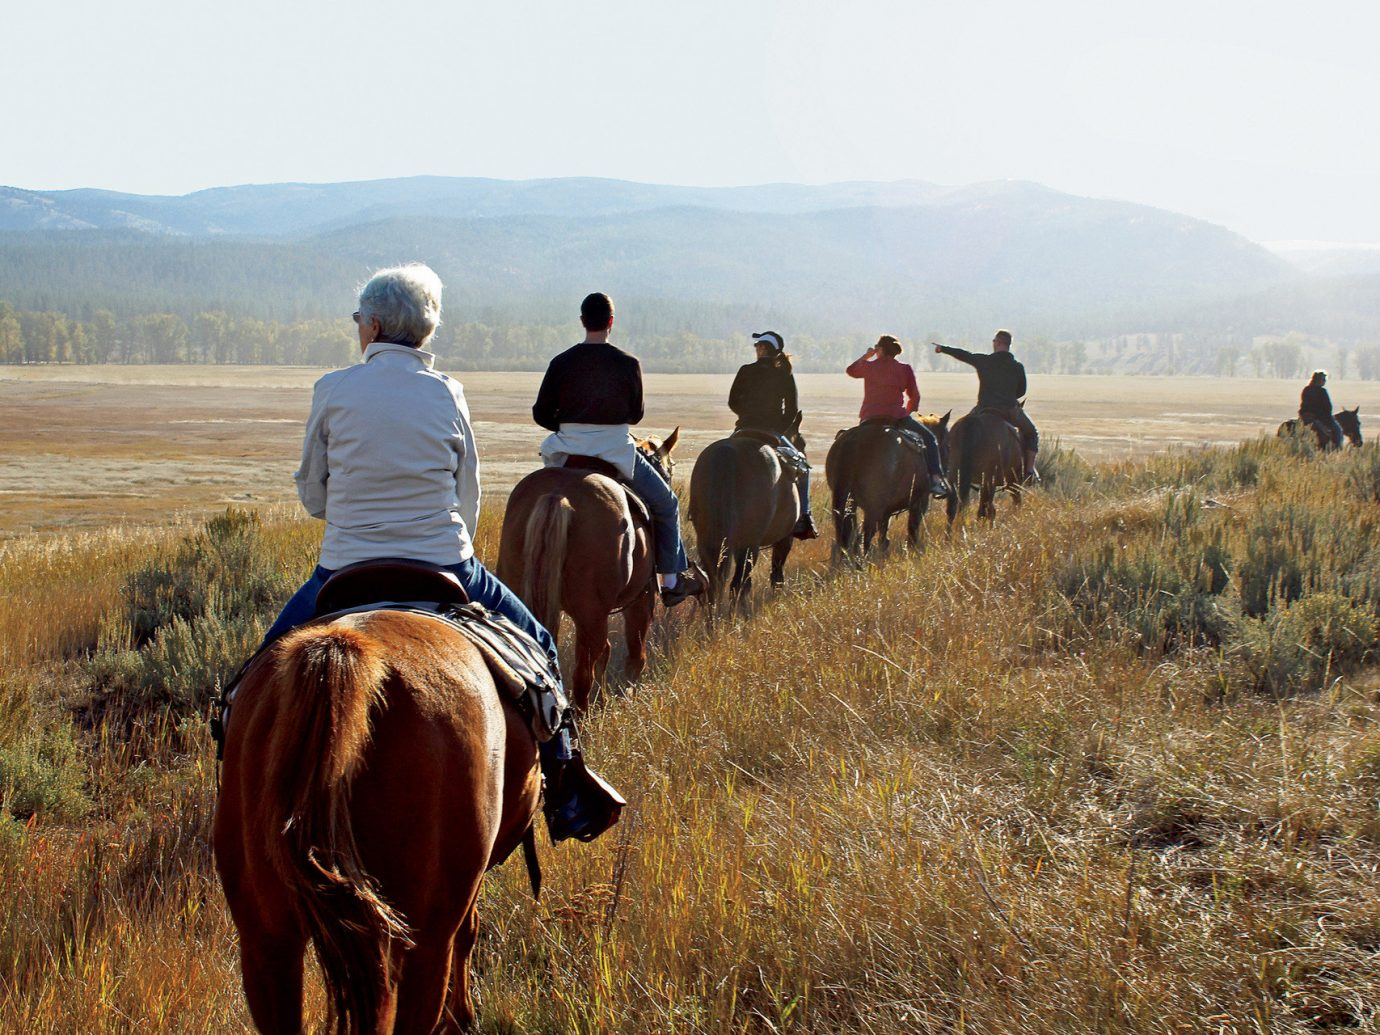 Horseback riding at The Resort at Paws Up